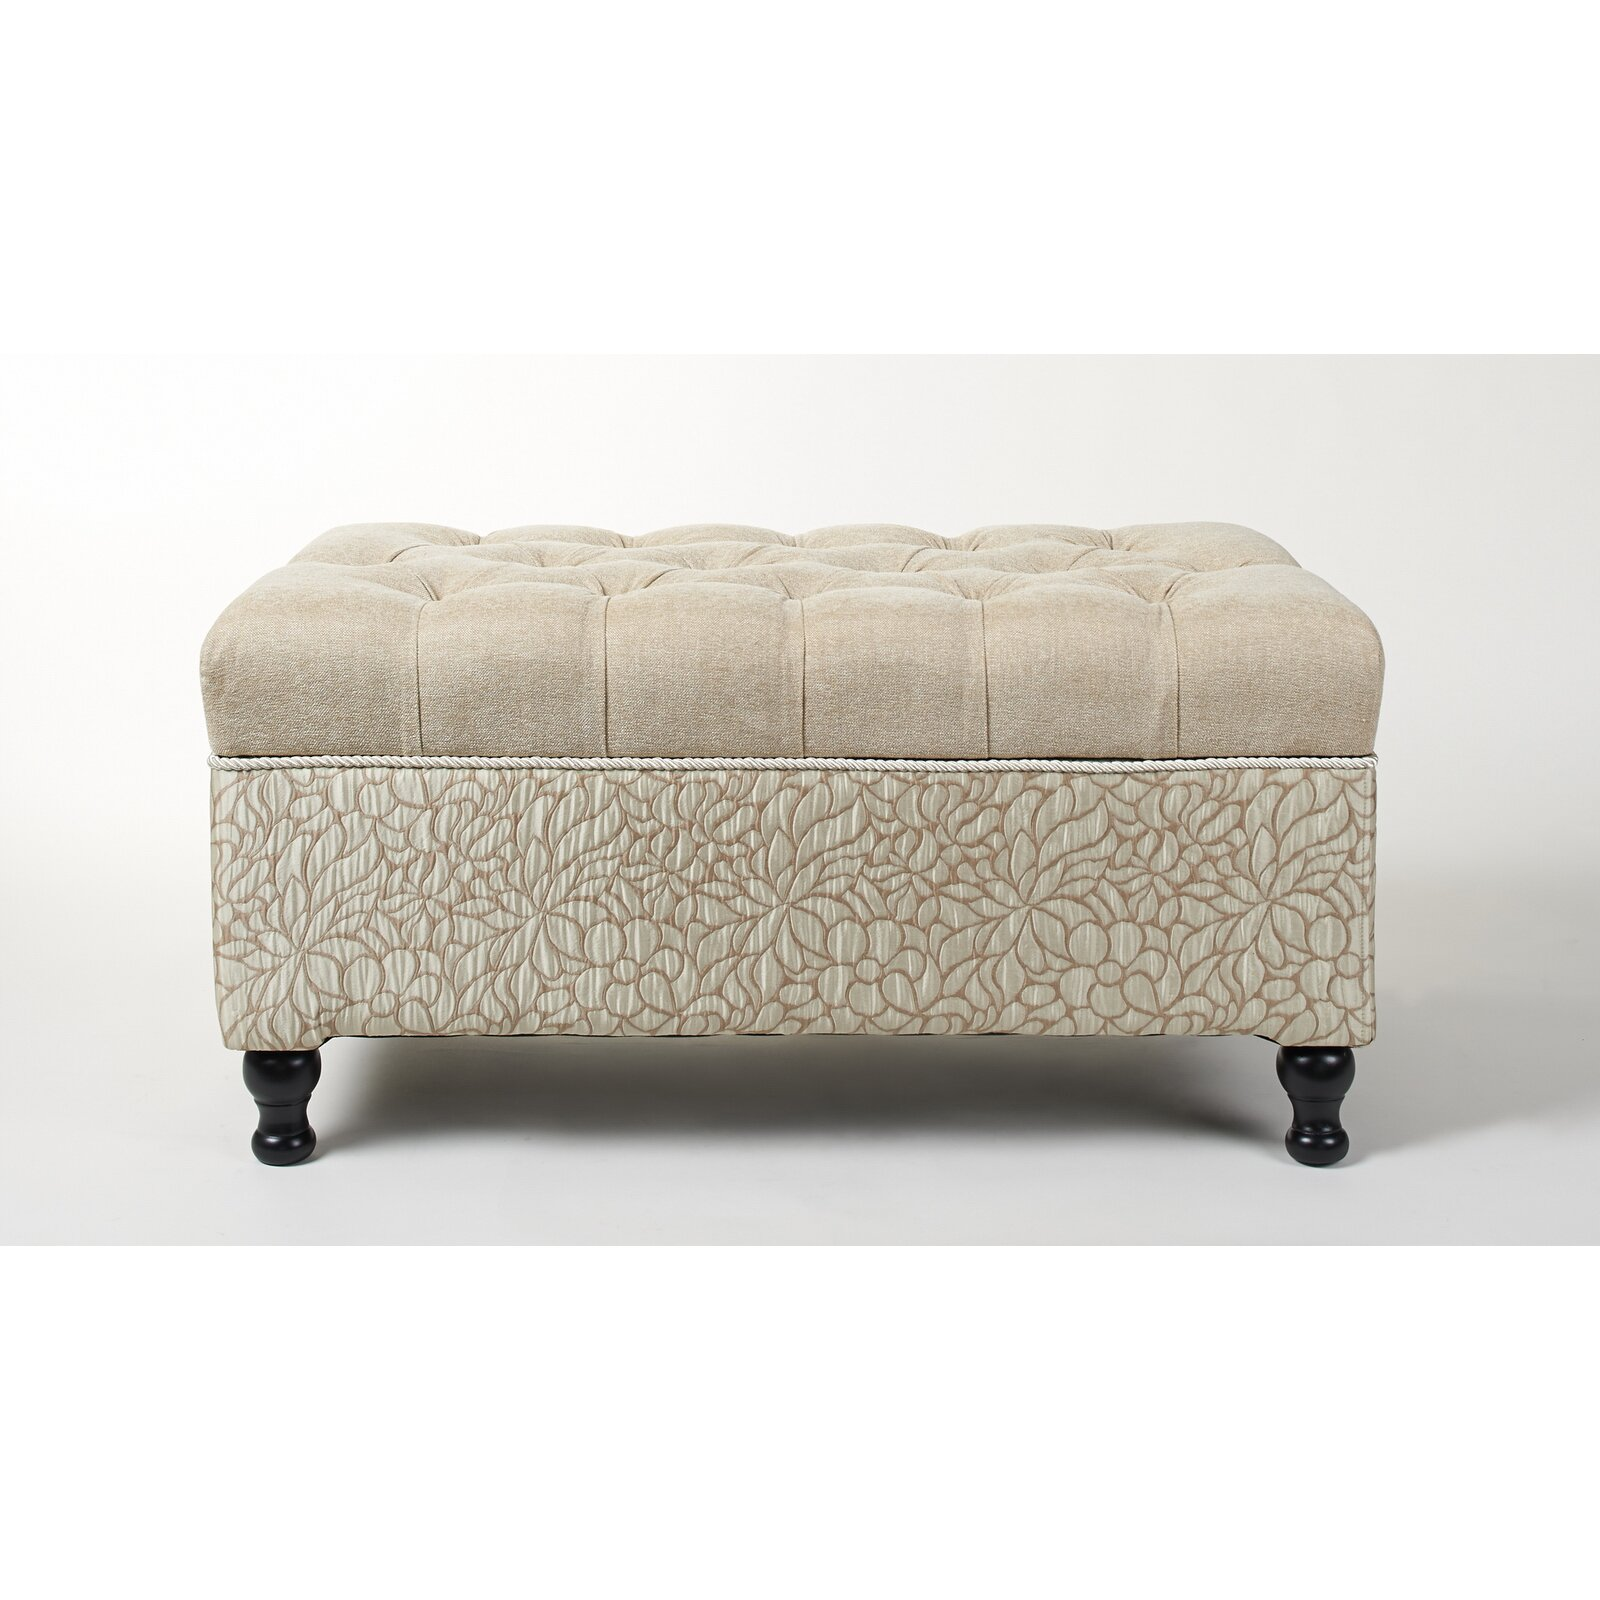 Jennifer taylor naomi upholstered storage bedroom bench reviews wayfair Bed bench storage